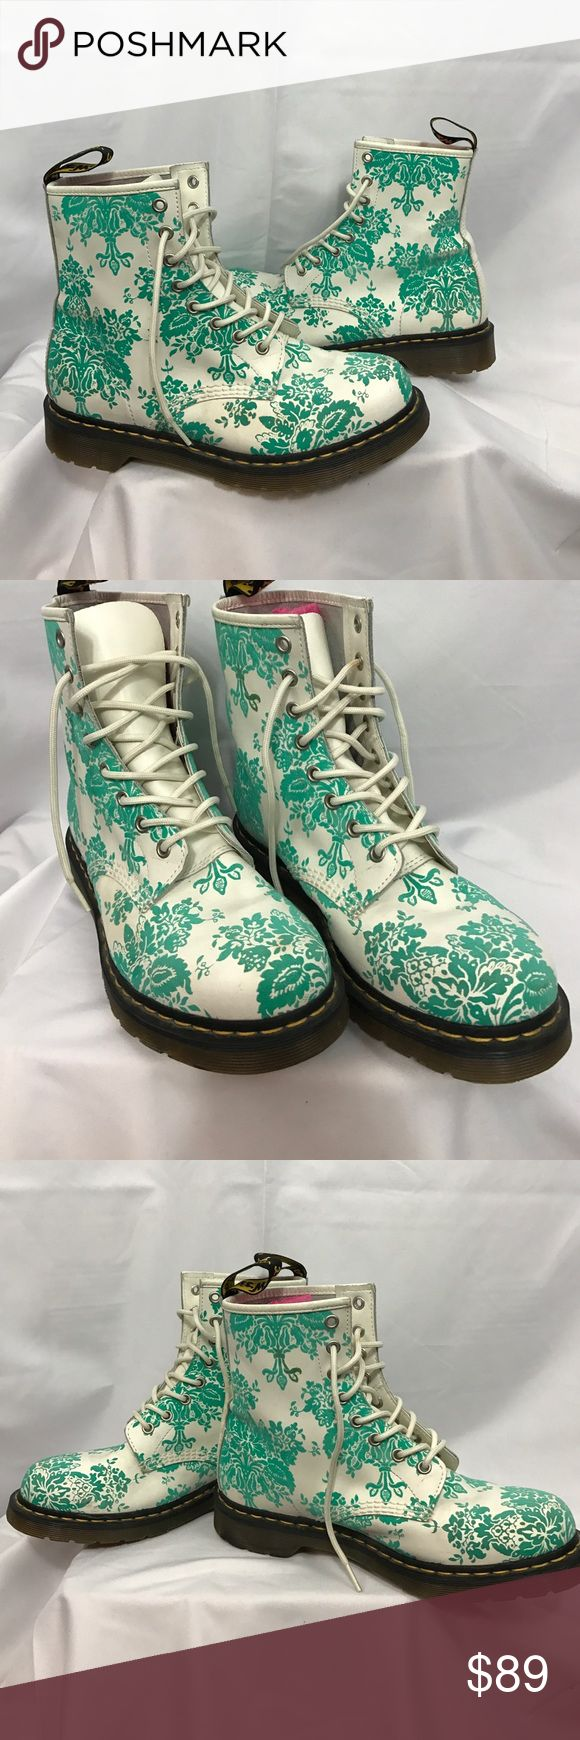 Doc Martens sz9 aqua flocked white leather boots Excellent used condition Doc Martens sz9 aqua flocked white leather boots...worn only a couple of times...some light wear marks...but overall in great shape... Dr. Martens Shoes Combat & Moto Boots